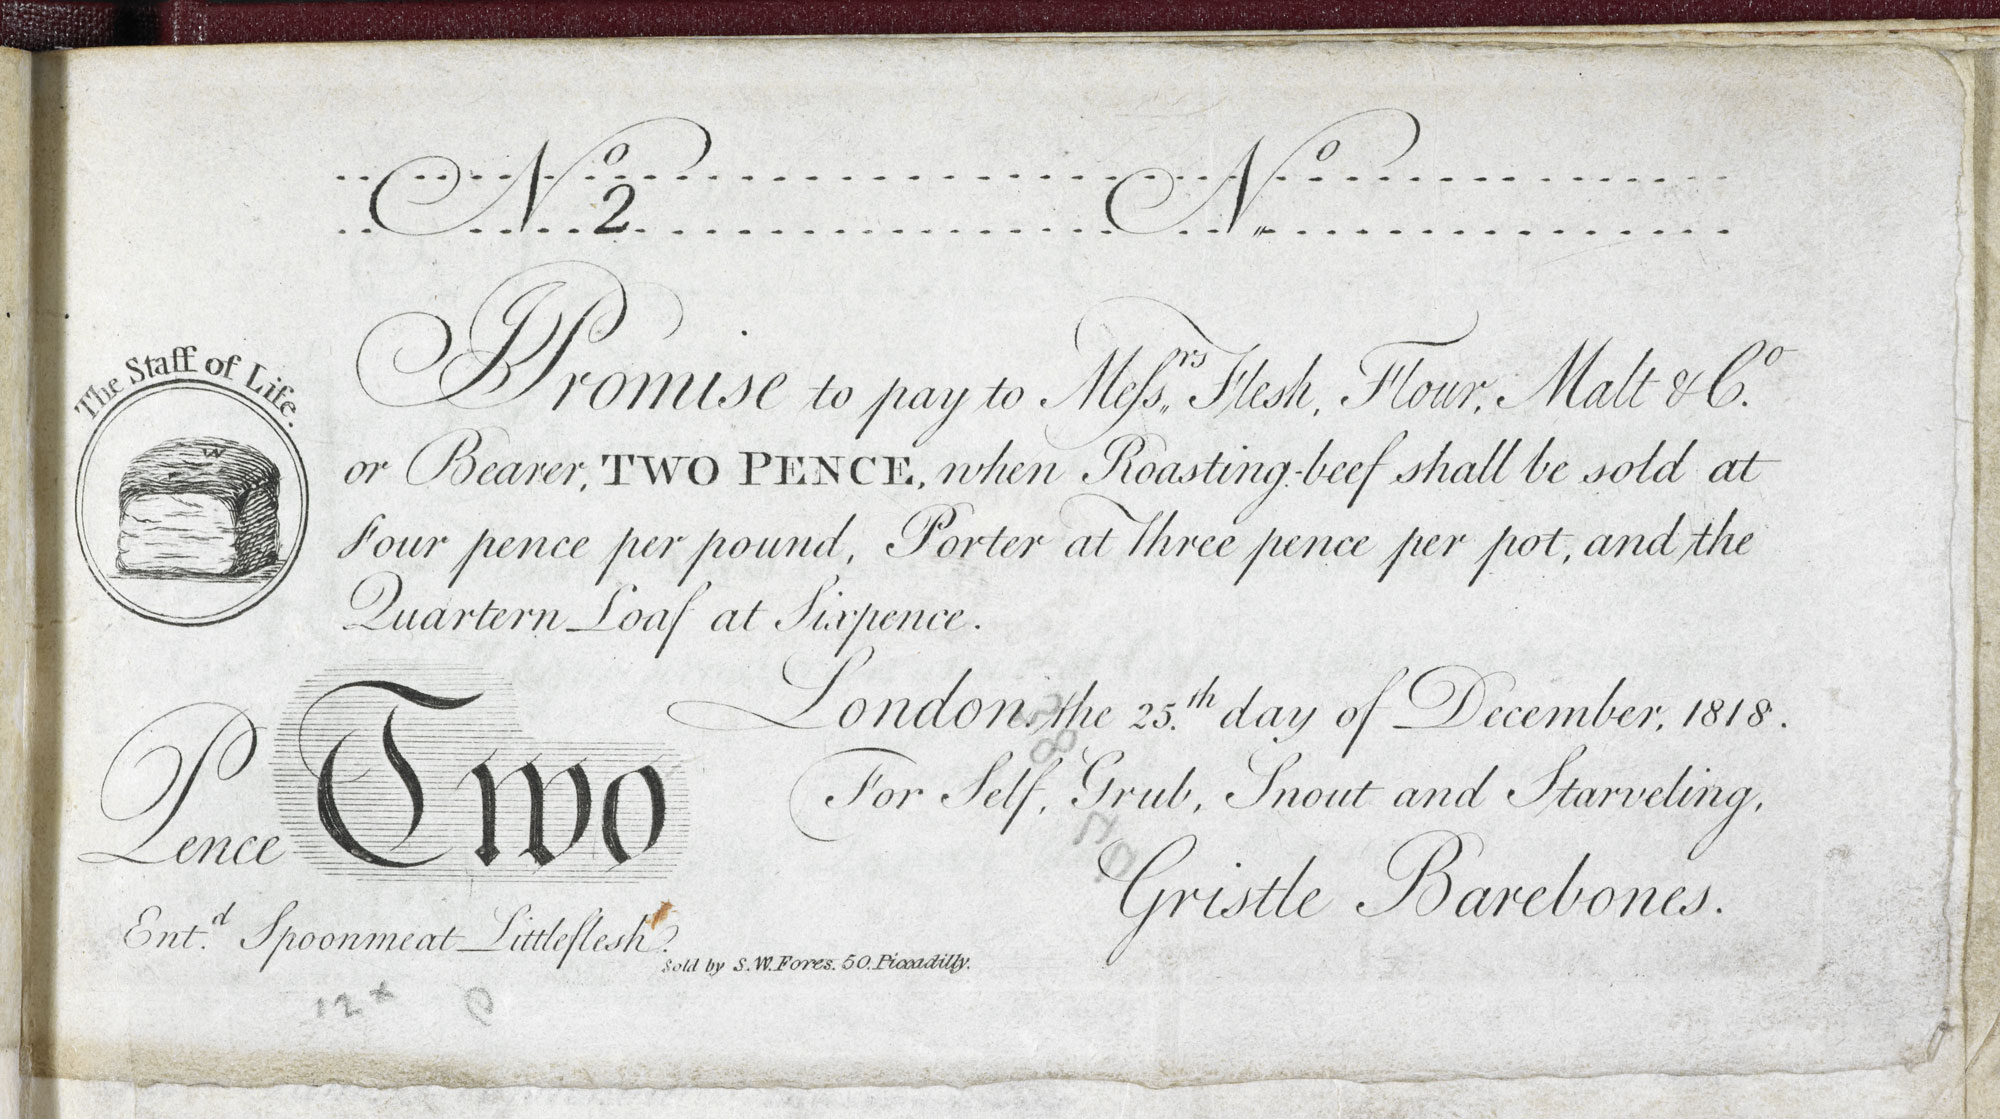 Satirical imitation bank notes [page: single sheet ['I Promise to pay to Messrs. Flesh, Flour, Malt & Co…']]